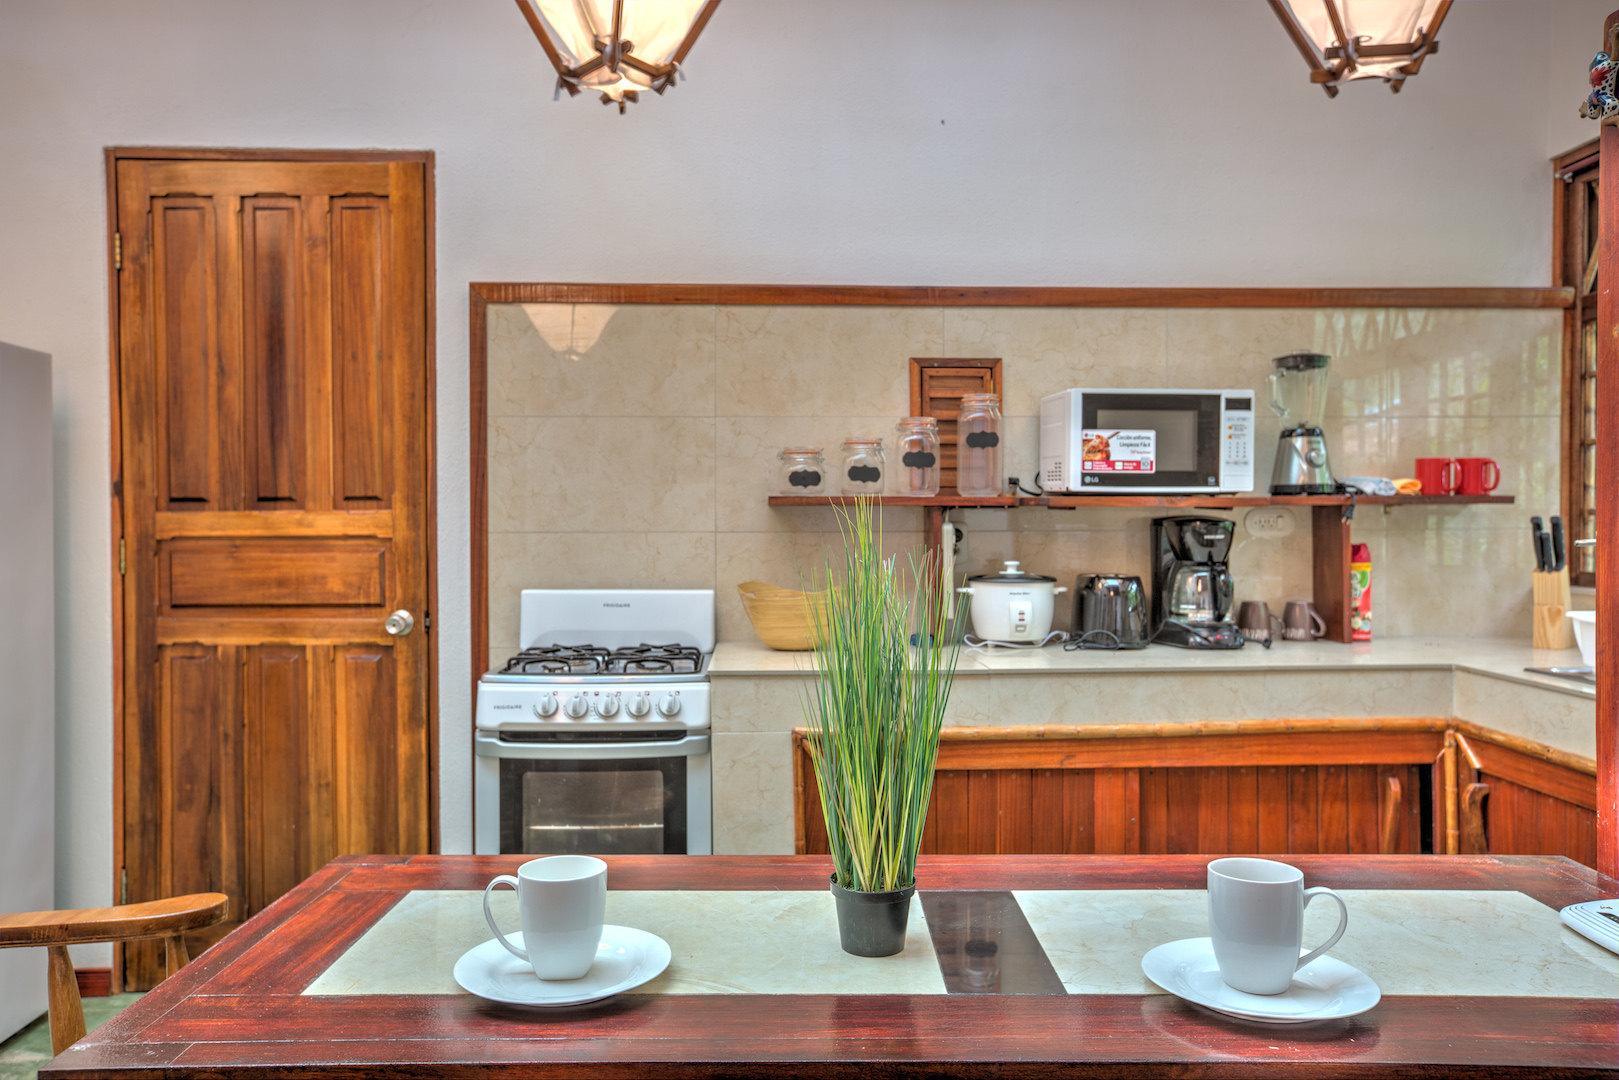 Playa Chiquita Lifestyle & Business – 4 apartments fully equipped